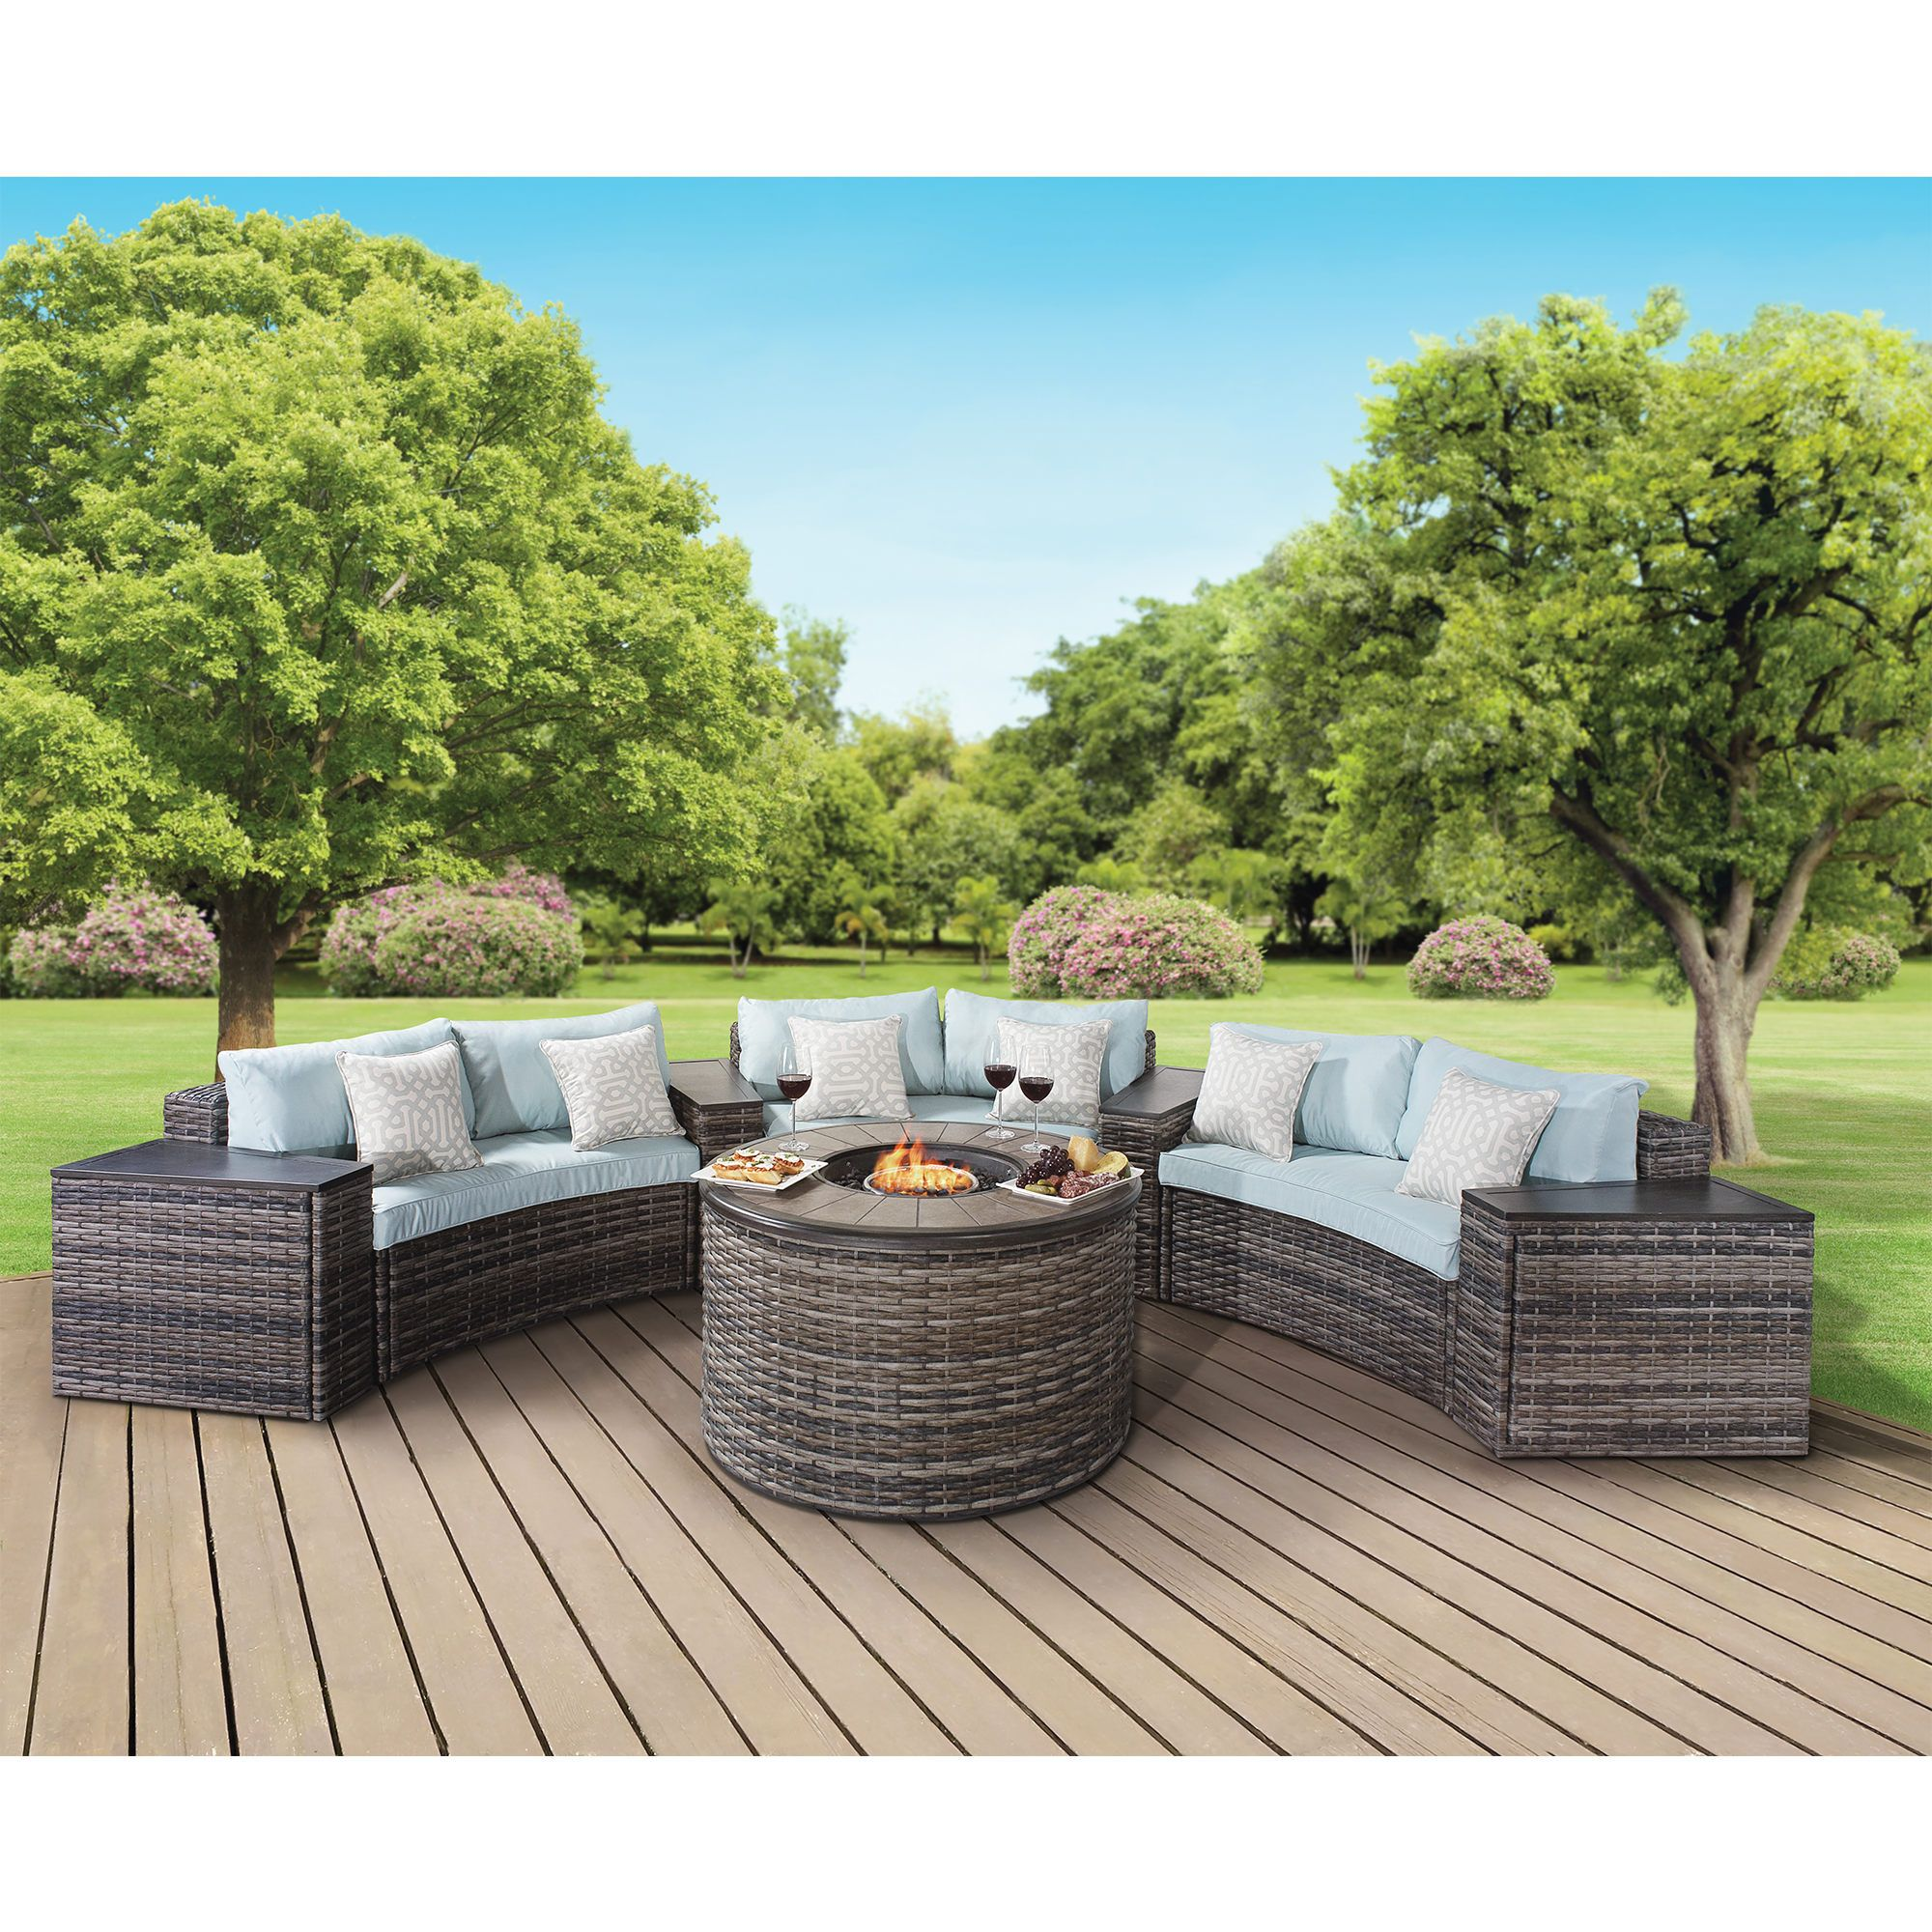 Berkley Jensen Hull 8 Pc Fire Chat Set Garden Modernbj S Wholesalemodern Furnitureoutdoor